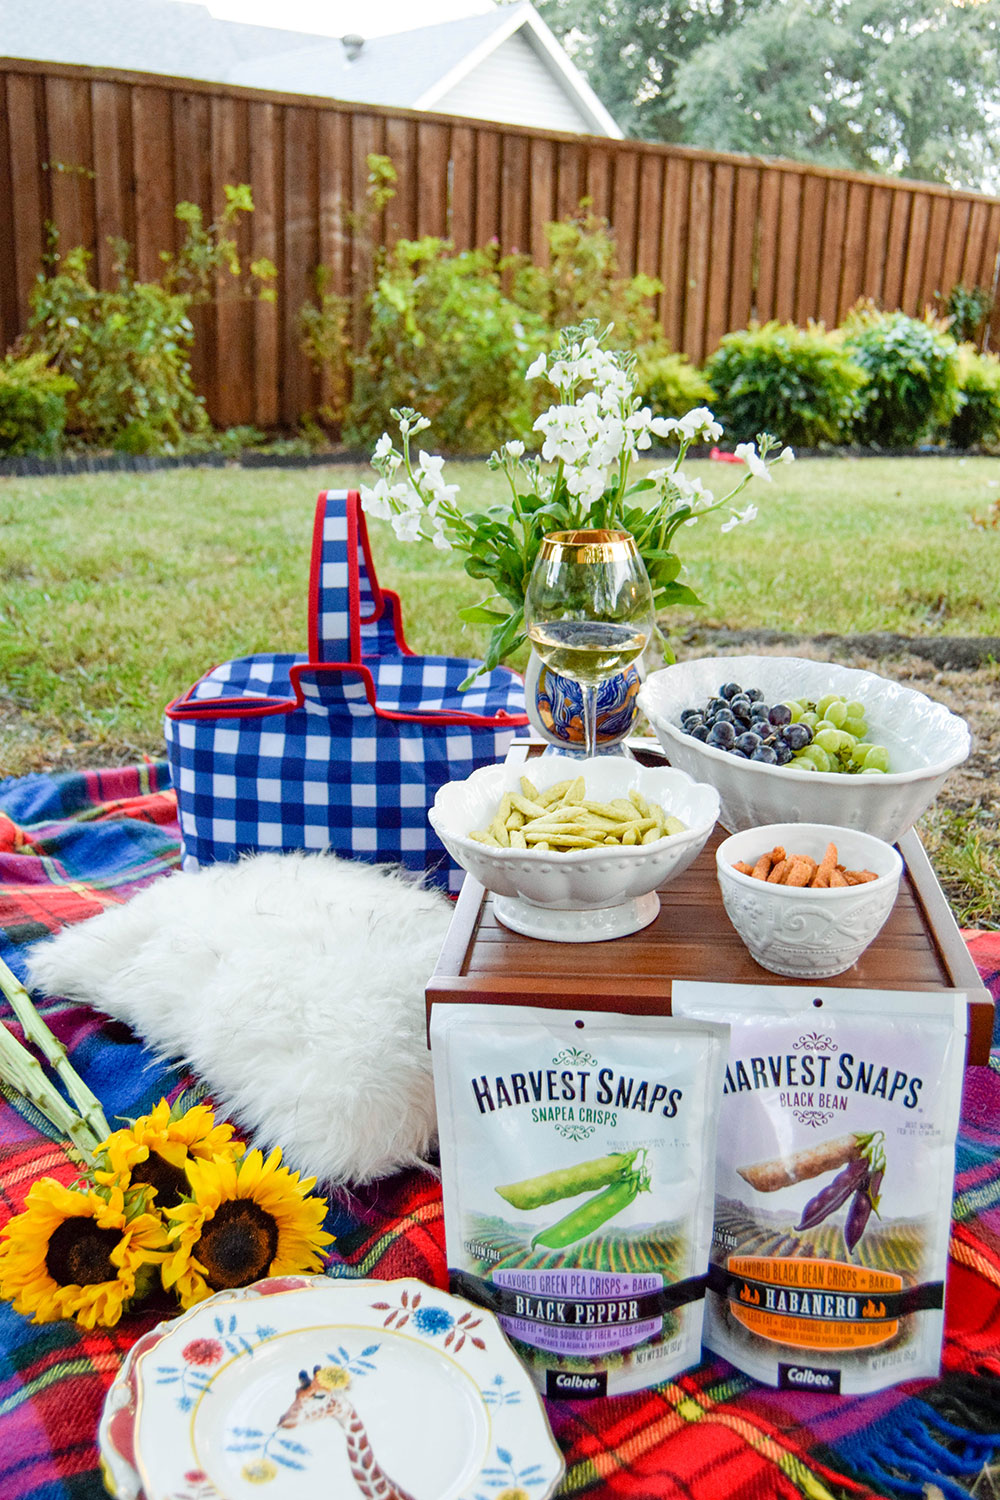 vandi-fair-dallas-fashion-blog-lauren-vandiver-southern-texas-lifestyle-fitness-blogger-healthy-snacking-snacks-harvest-snaps-snap-pea-crisps-picnic-5